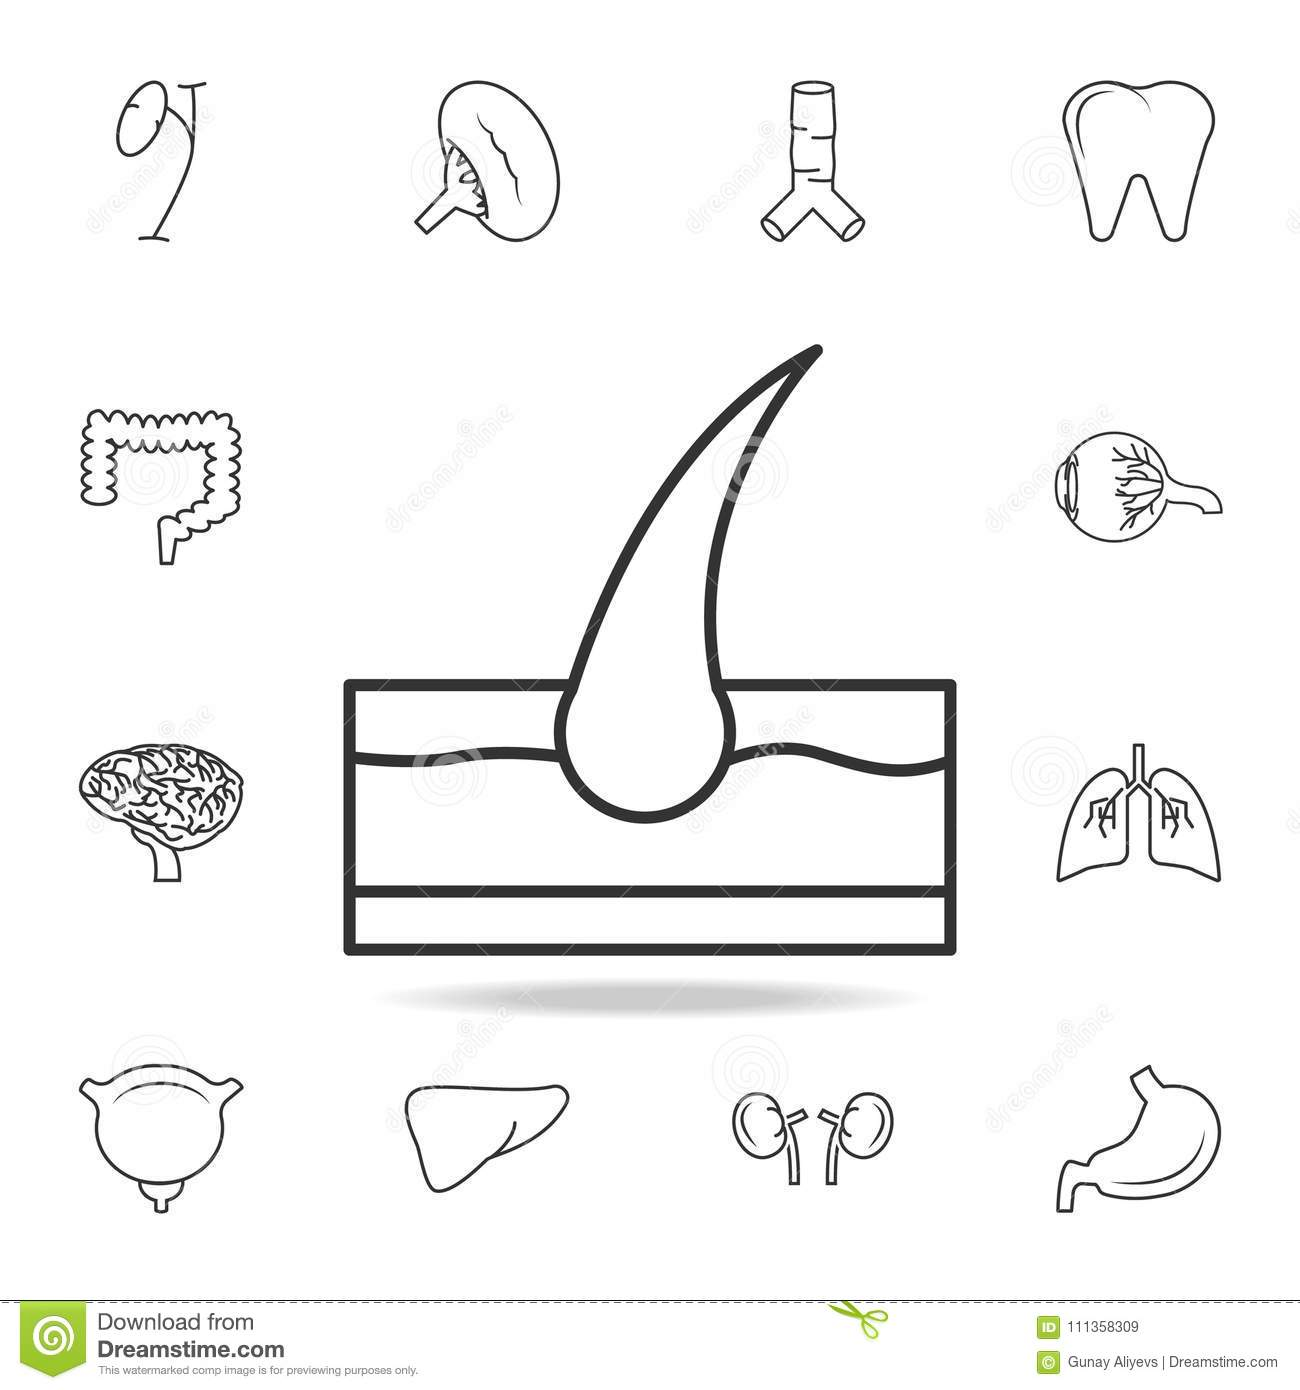 Hair In Skin Icon Detailed Set Of Human Body Part Icons Premium